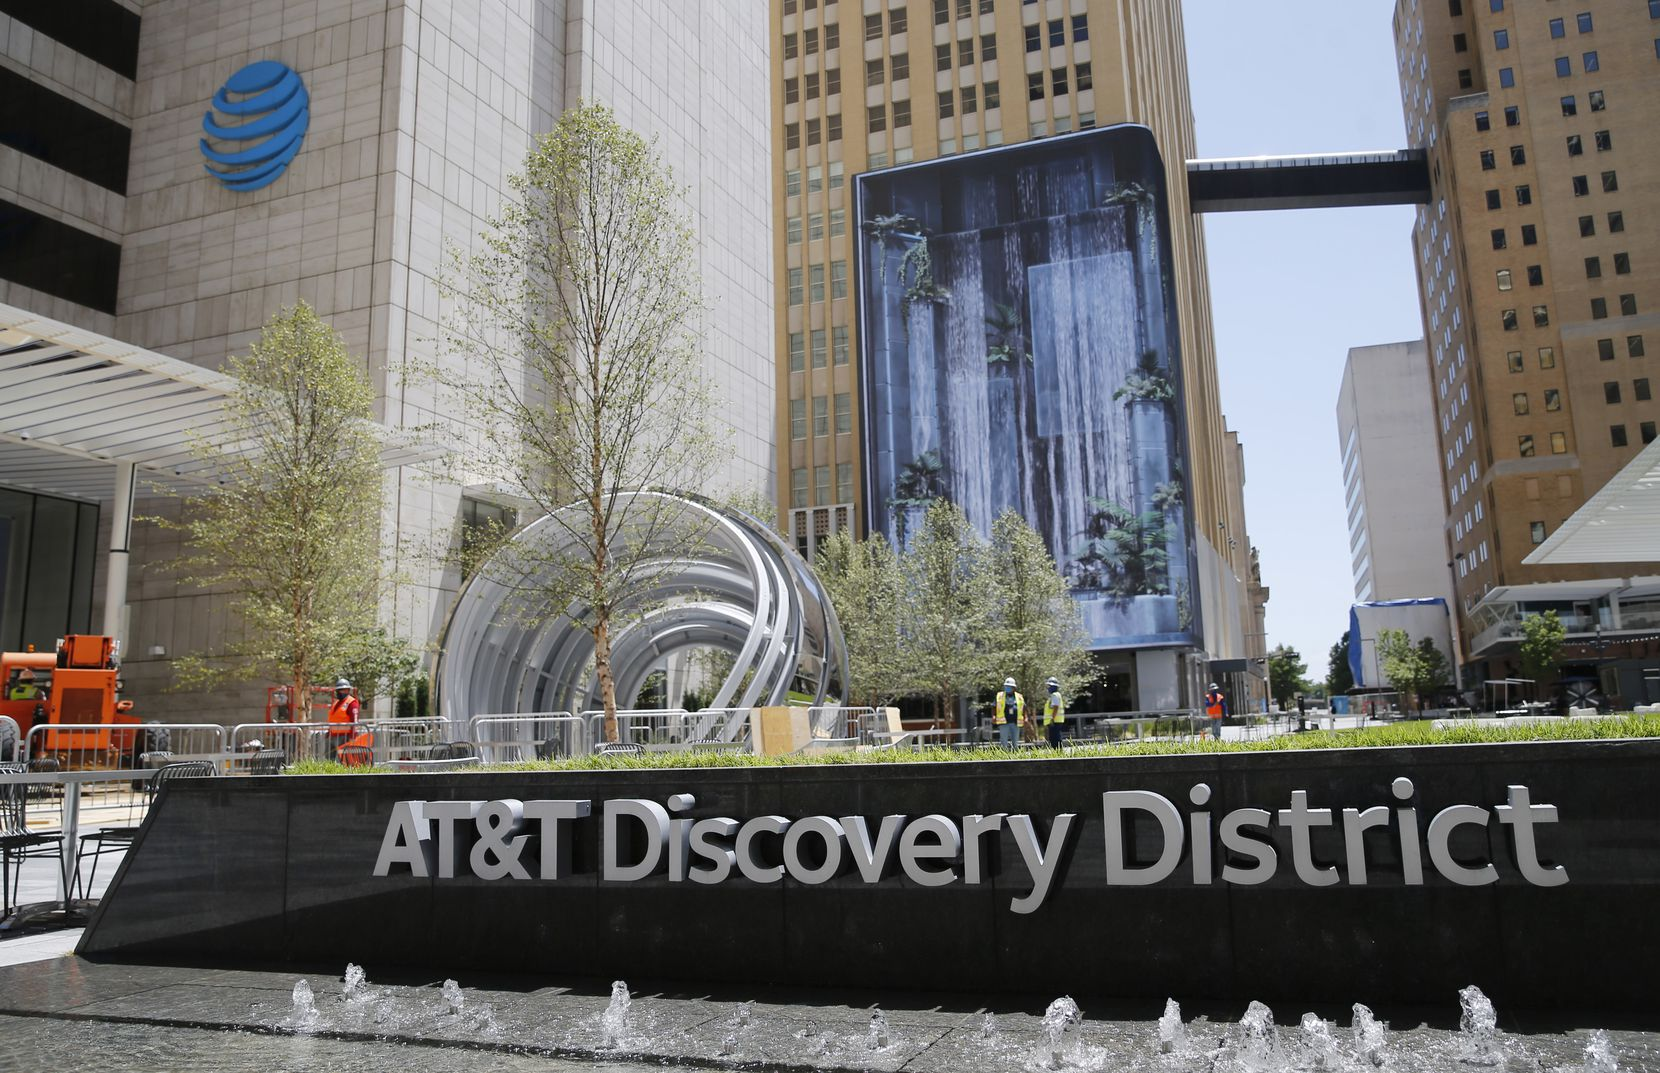 AT&T Discovery District, an outdoor space that includes a 104-foot-tall media wall in downtown Dallas on Monday, August 10, 2020. (Vernon Bryant/The Dallas Morning News)